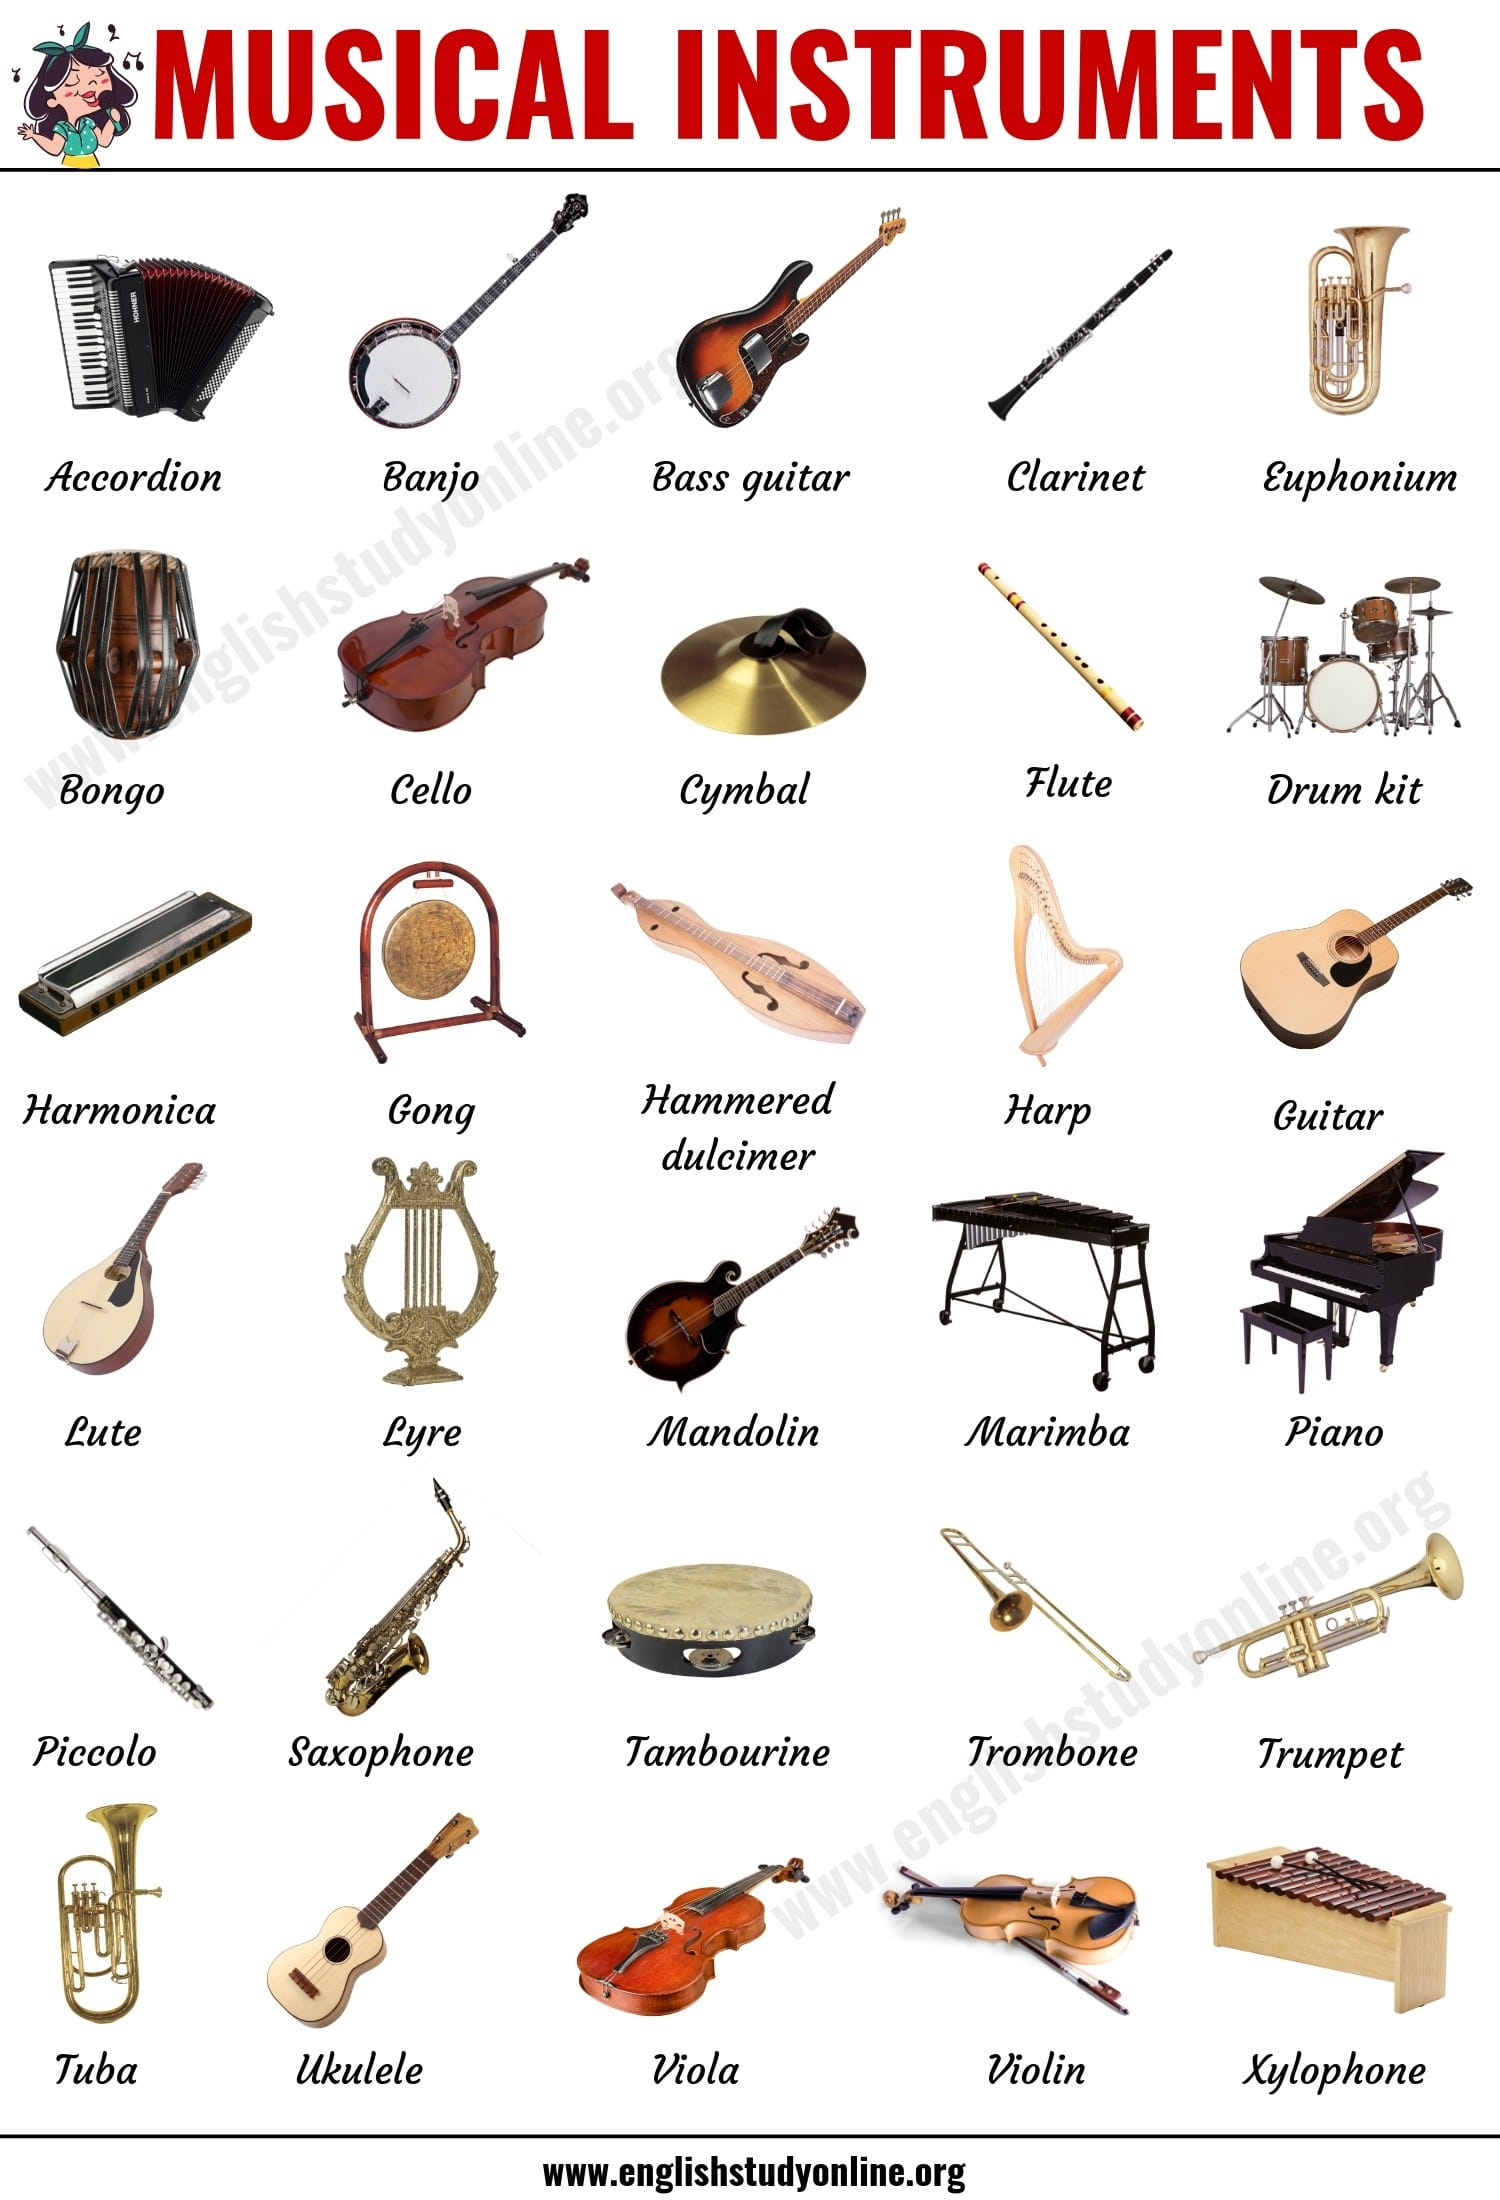 Musical Instruments List of 20 Popular Types of Instruments in ...